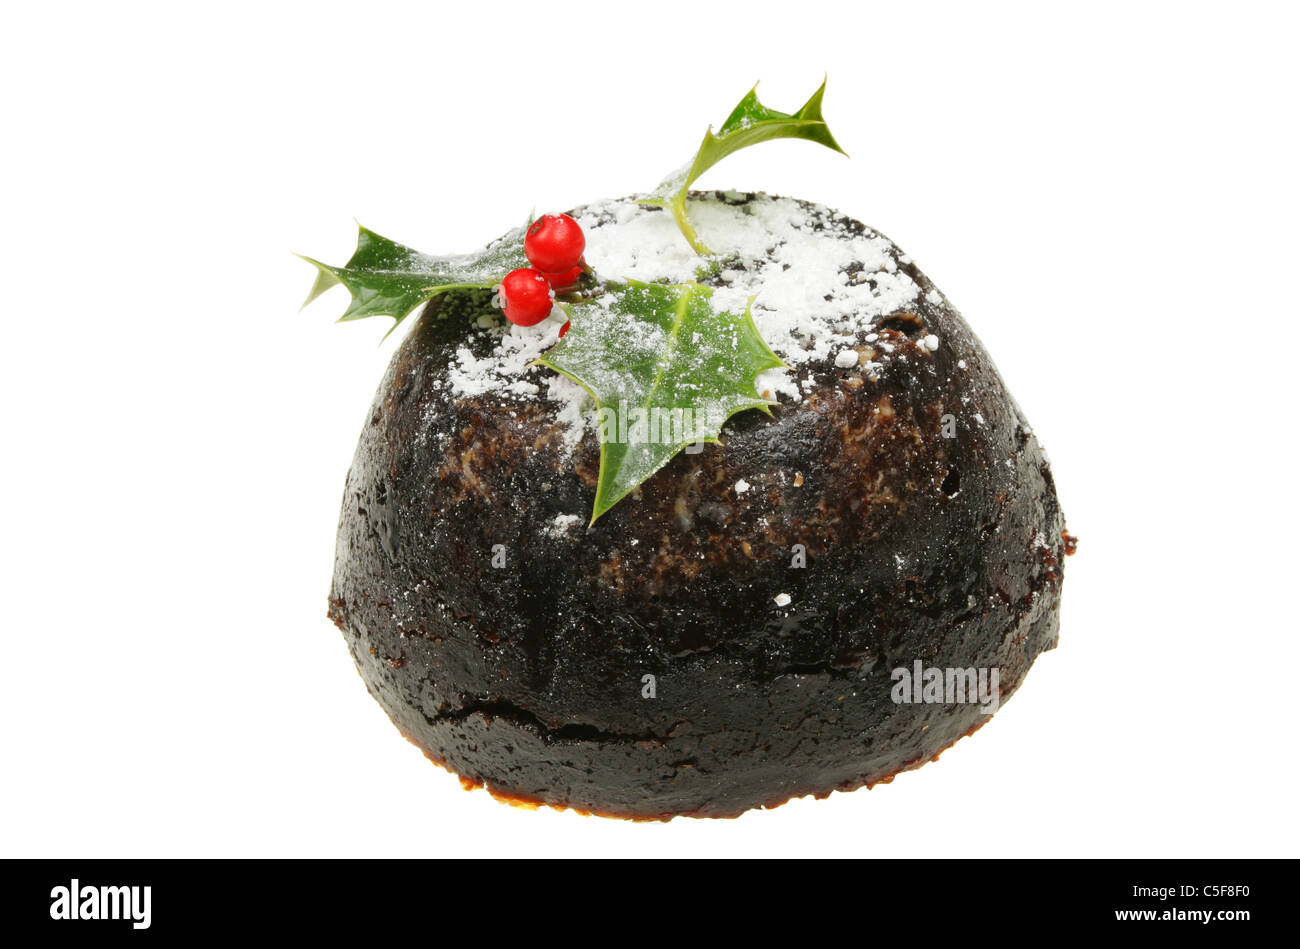 Christmas pudding dusted with sugar and decorated with a holly sprig - Stock Image